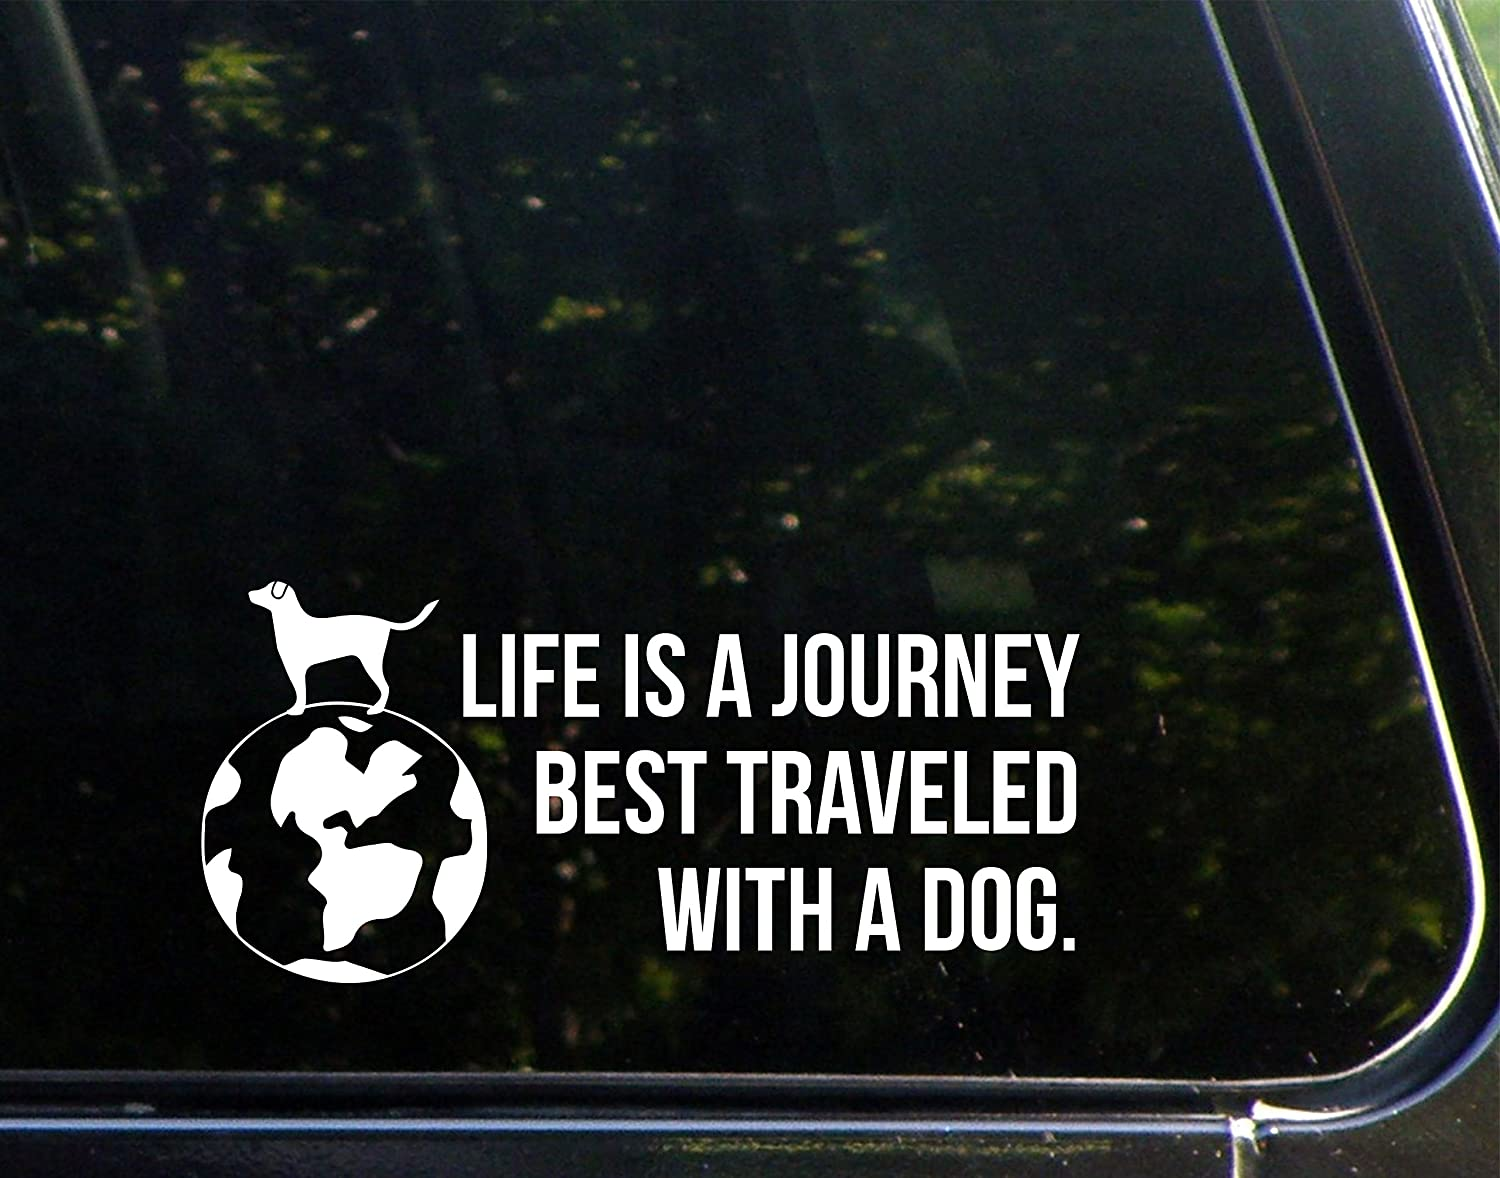 Amazon com life is a journey best traveled with a dog 8 3 4 x 3 3 4 vinyl die cut decal bumper sticker for windows cars trucks laptops